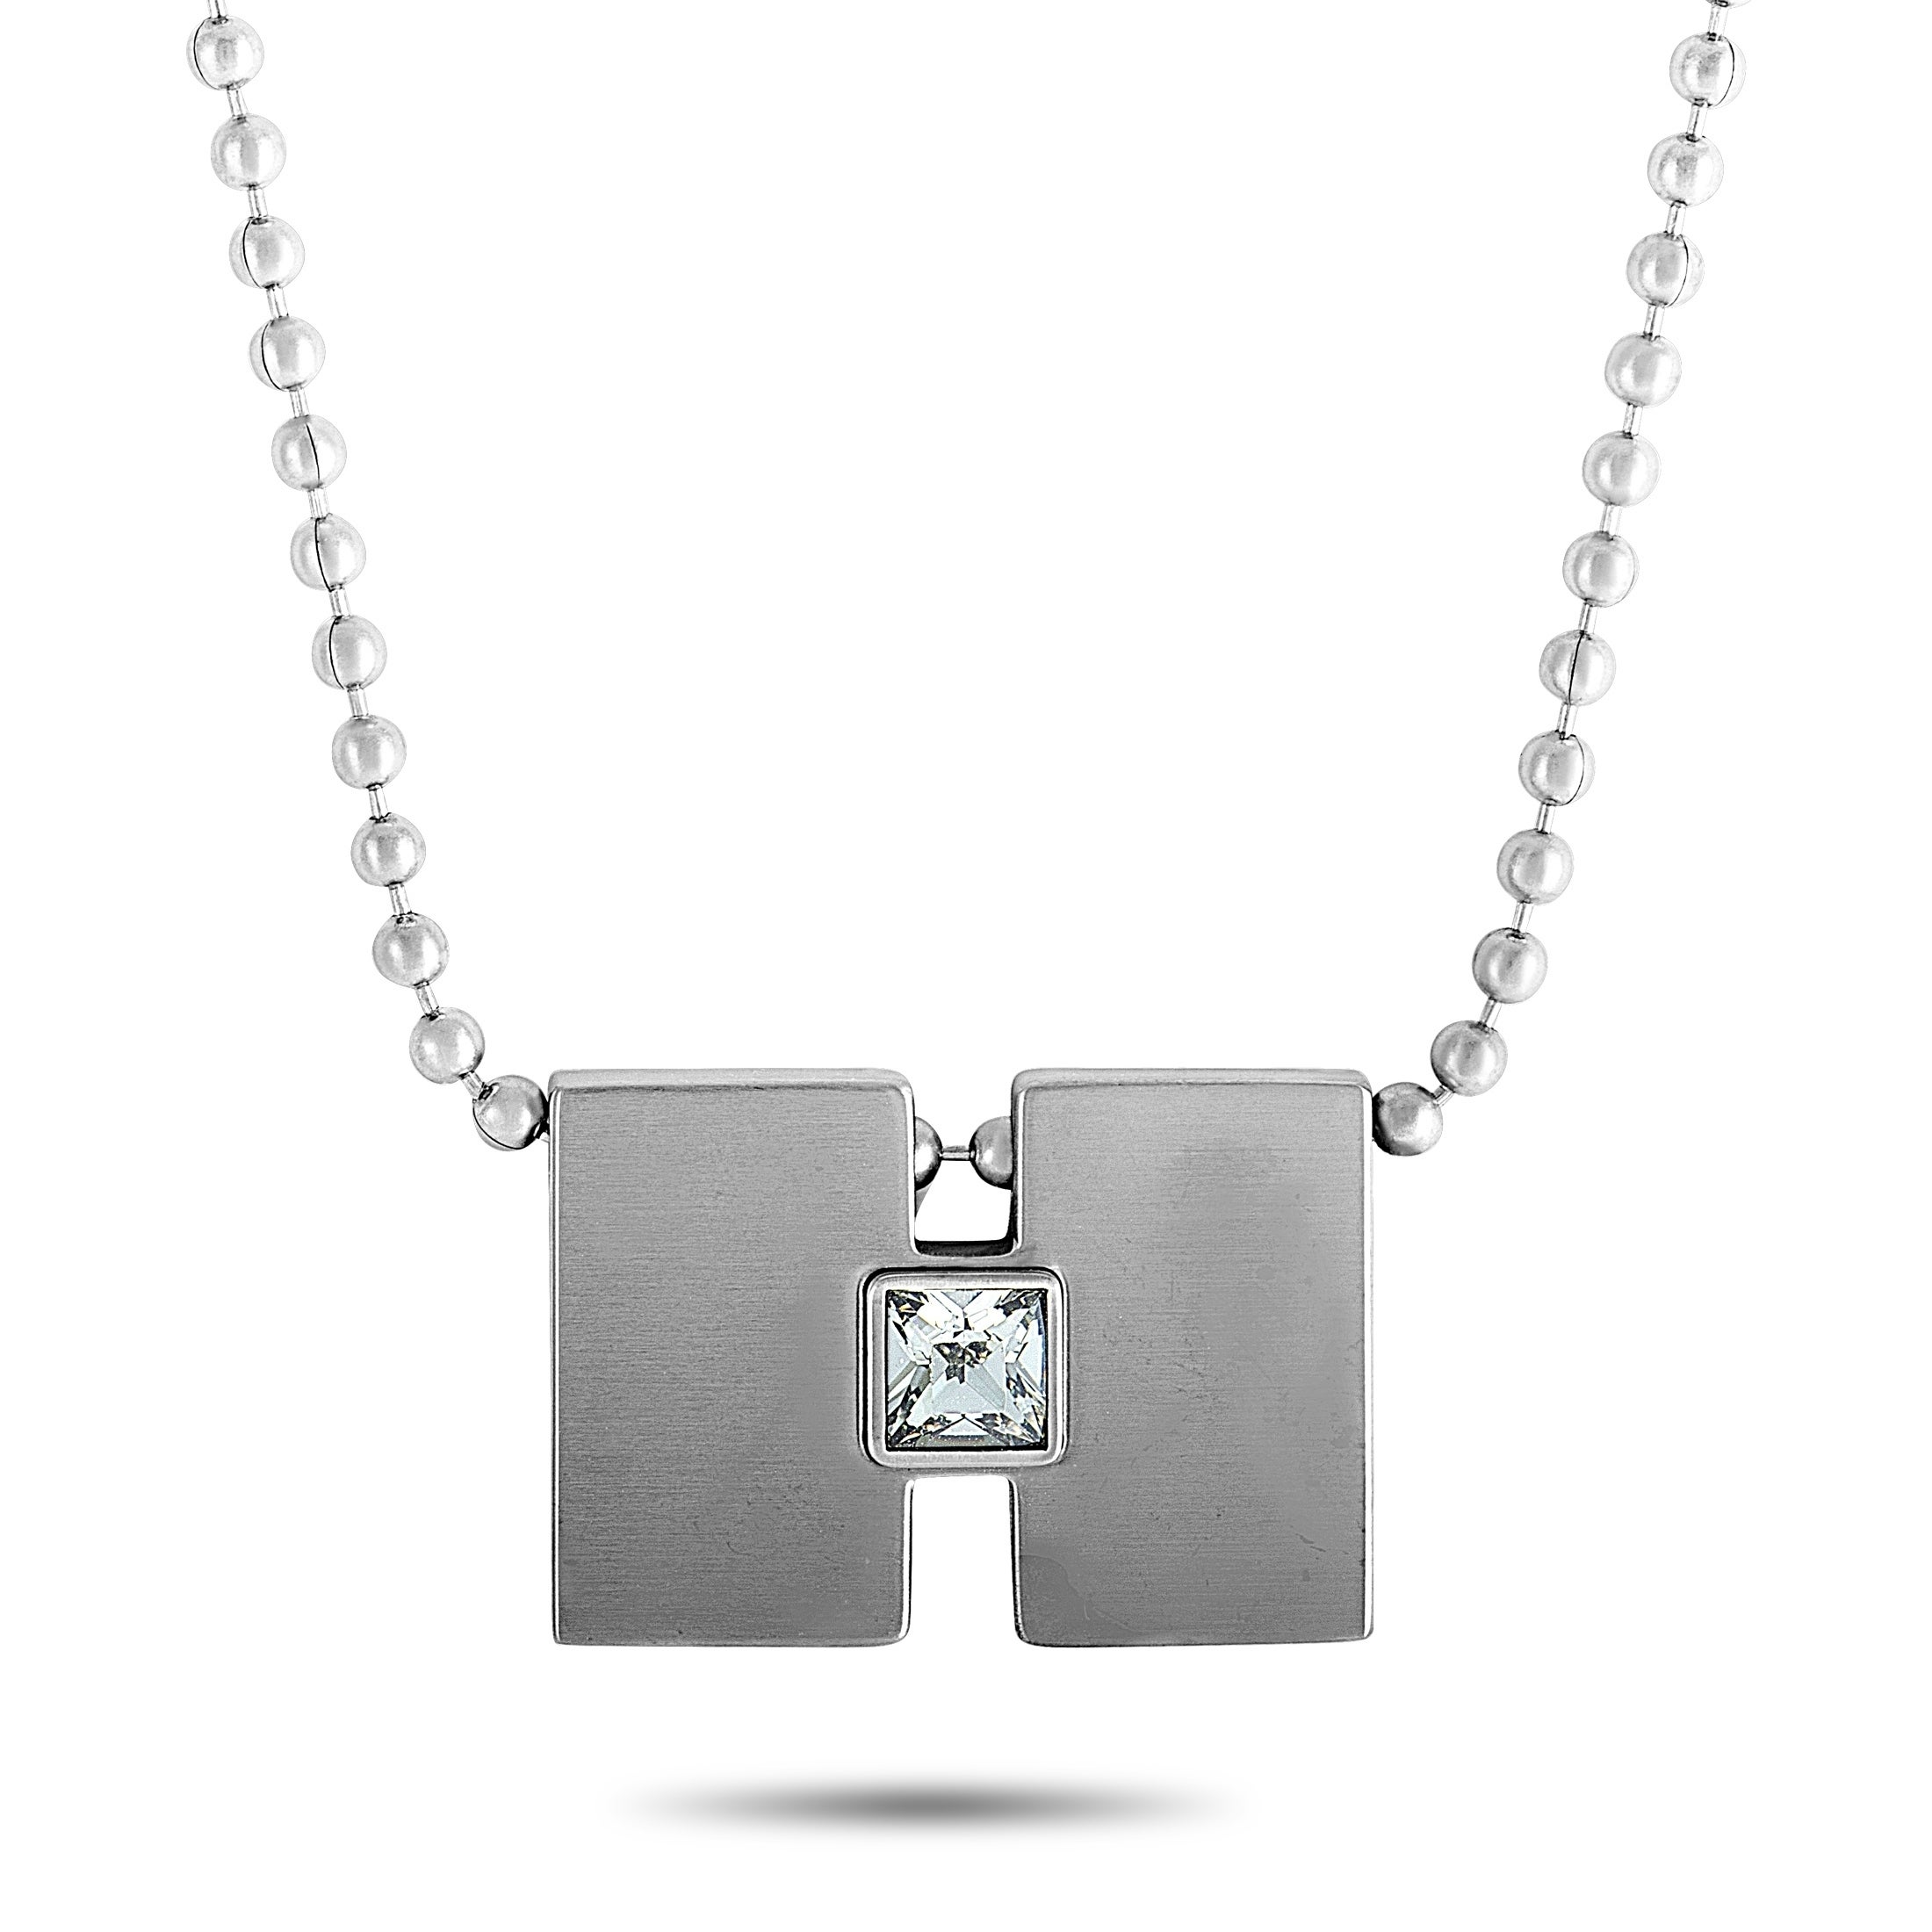 Swatch Topic Path Stainless Steel and Smoky Crystal Necklace